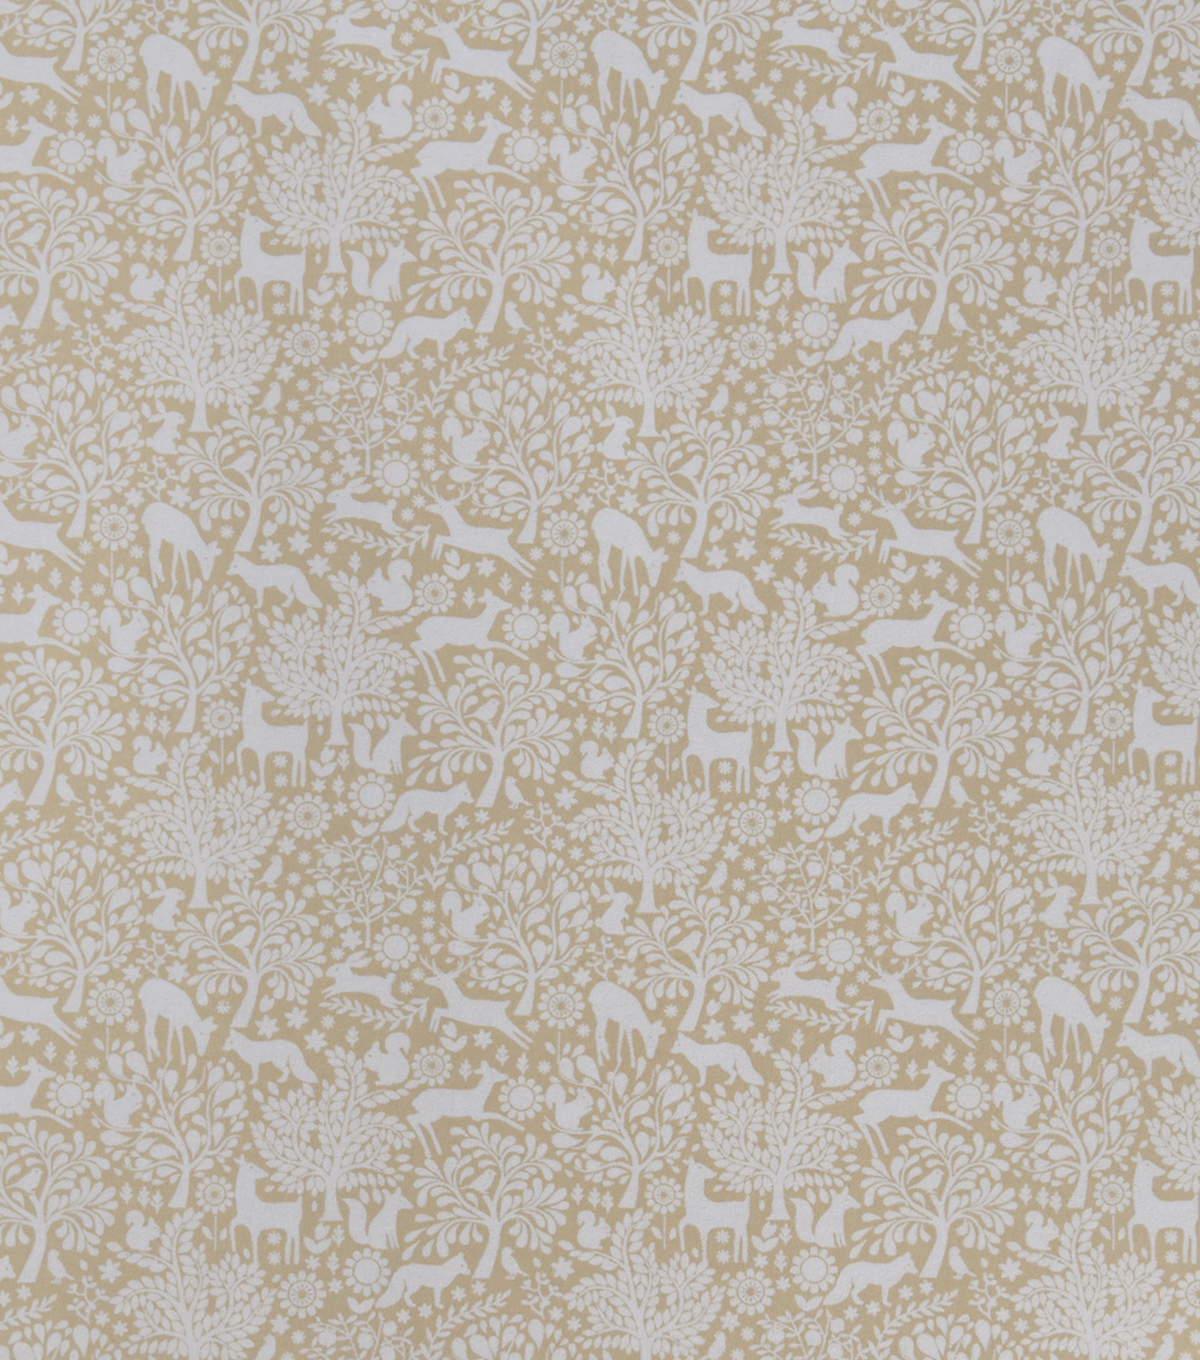 Snuggle Flannel Fabric-Neutral Packed Floral Animals